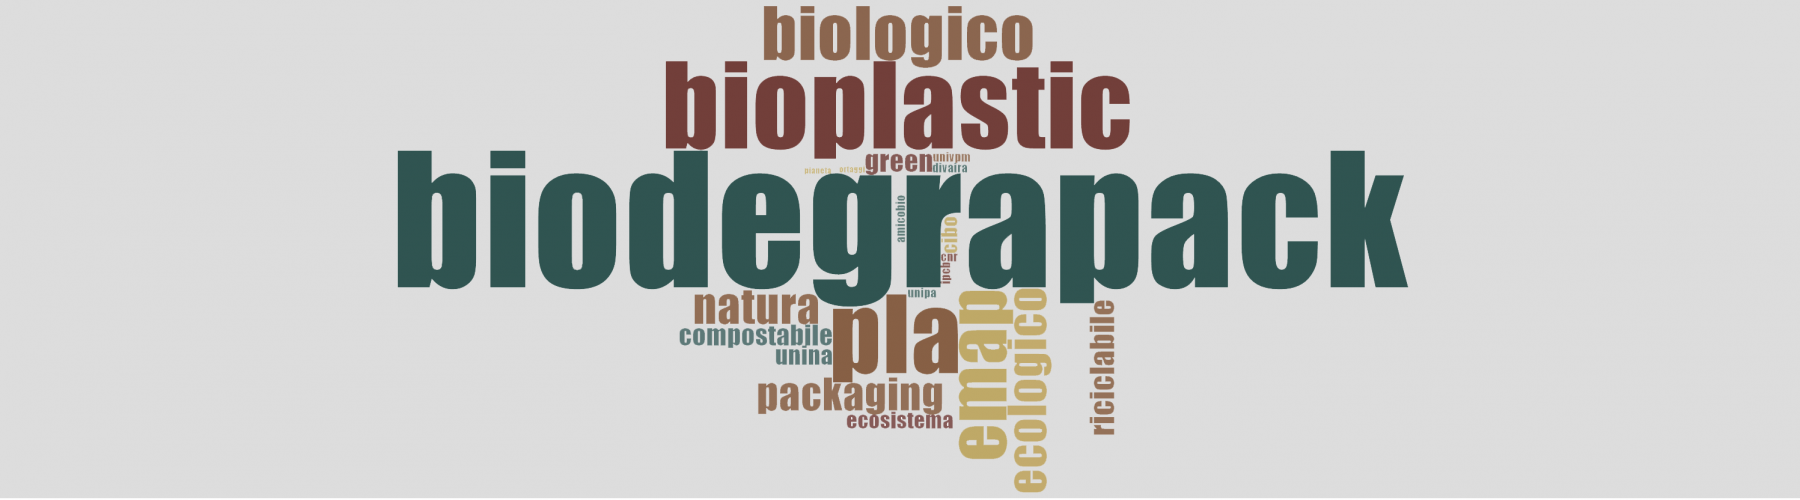 wordcount biodegrapack